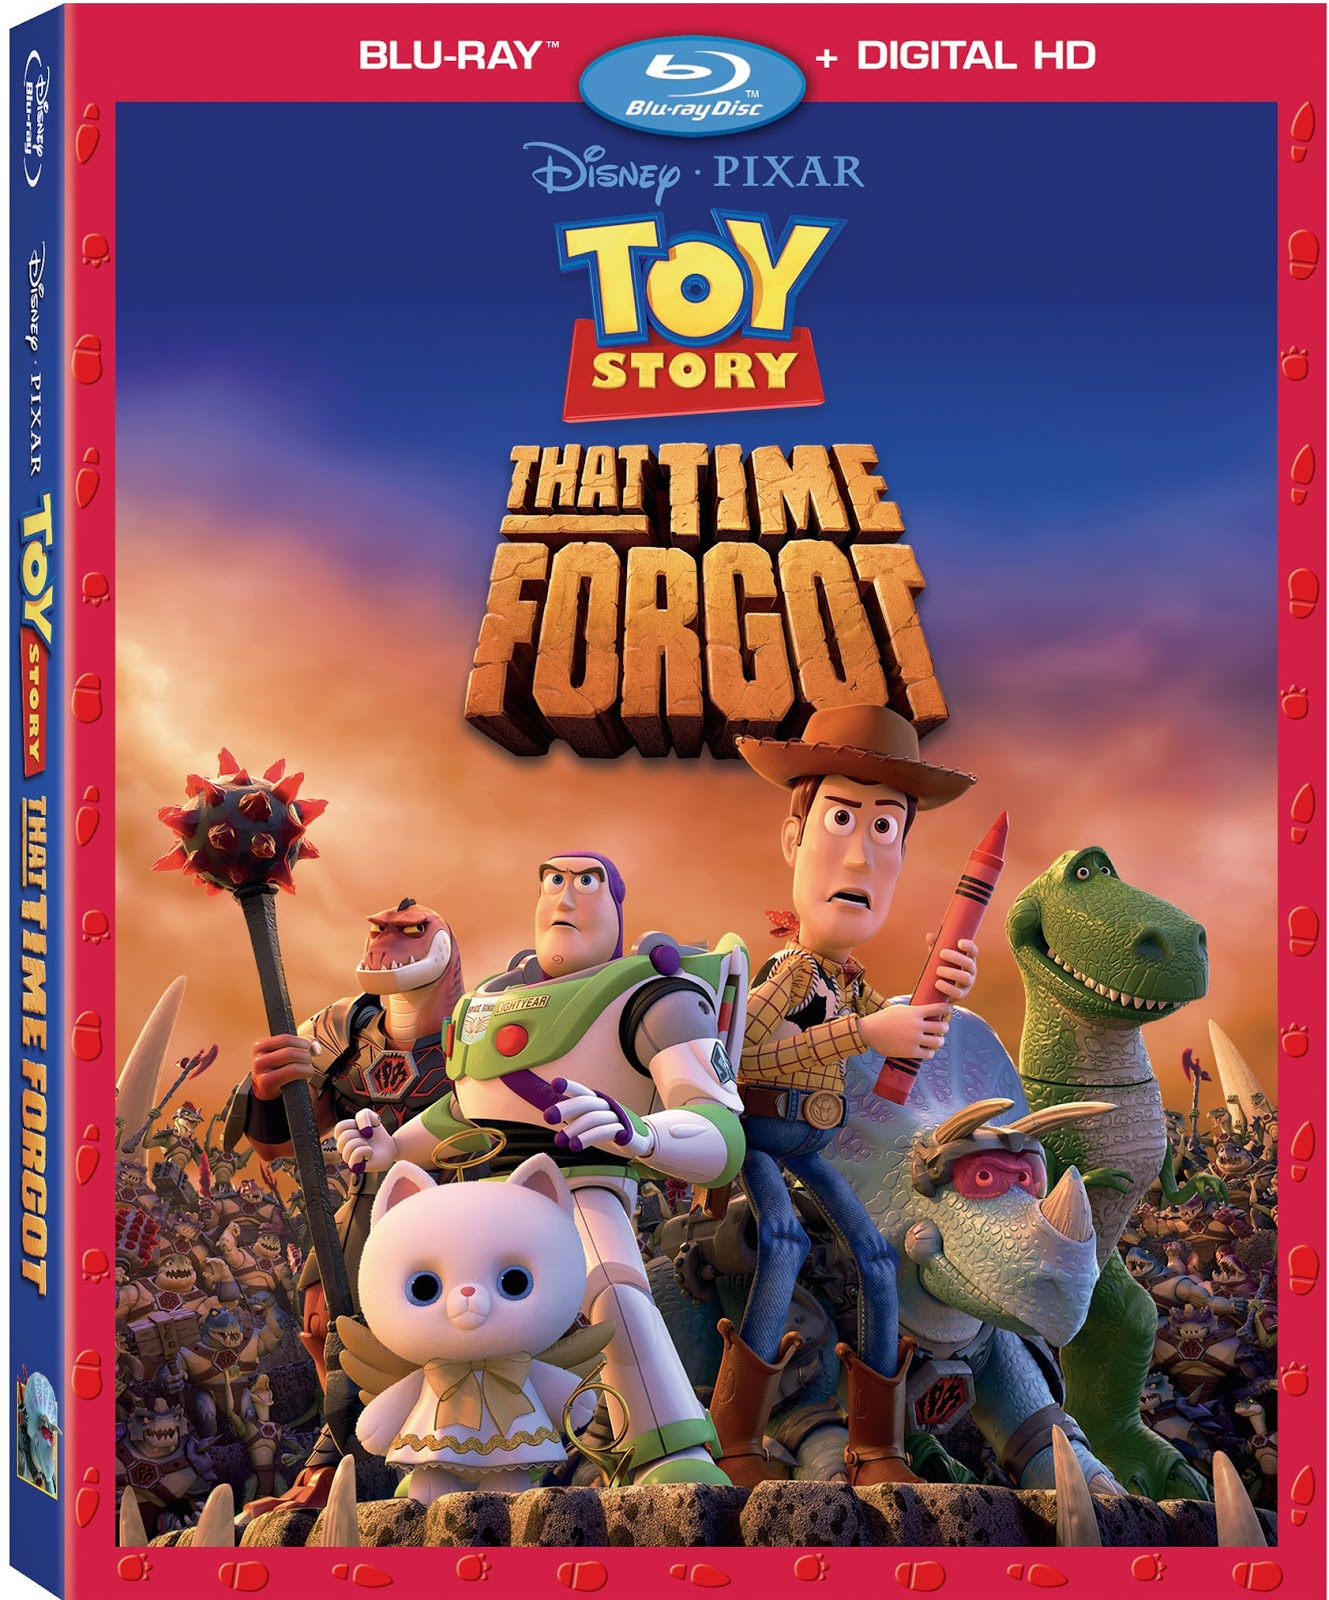 f33801fed23 Blu-Ray Review  Toy Story That Time Forgot